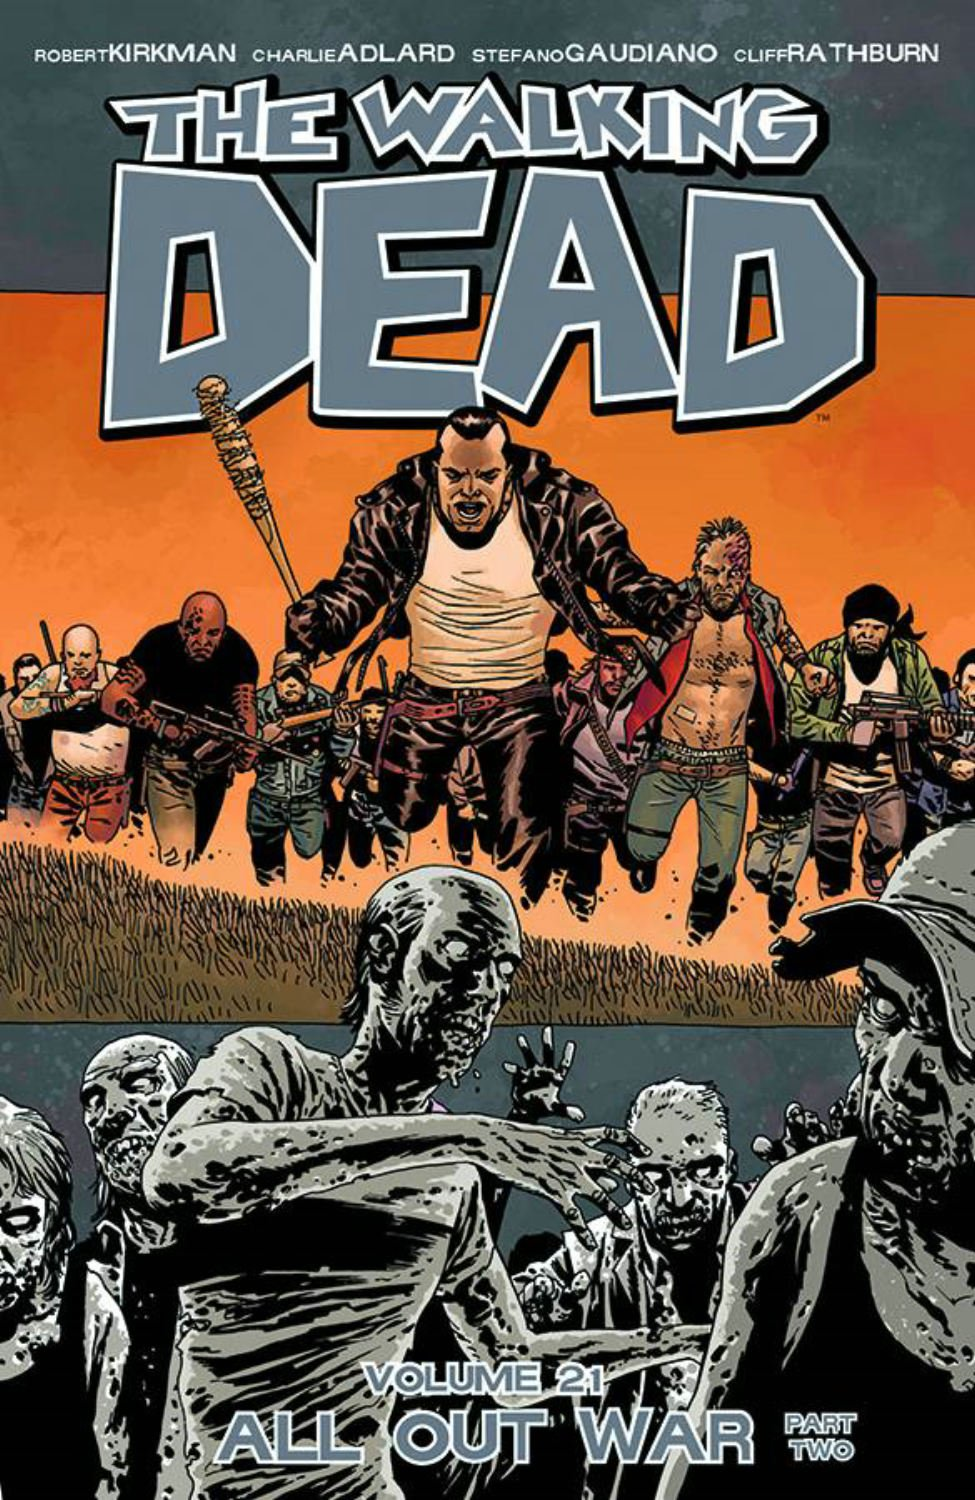 The Walking Dead Volume 21 - All Out War: Part Two